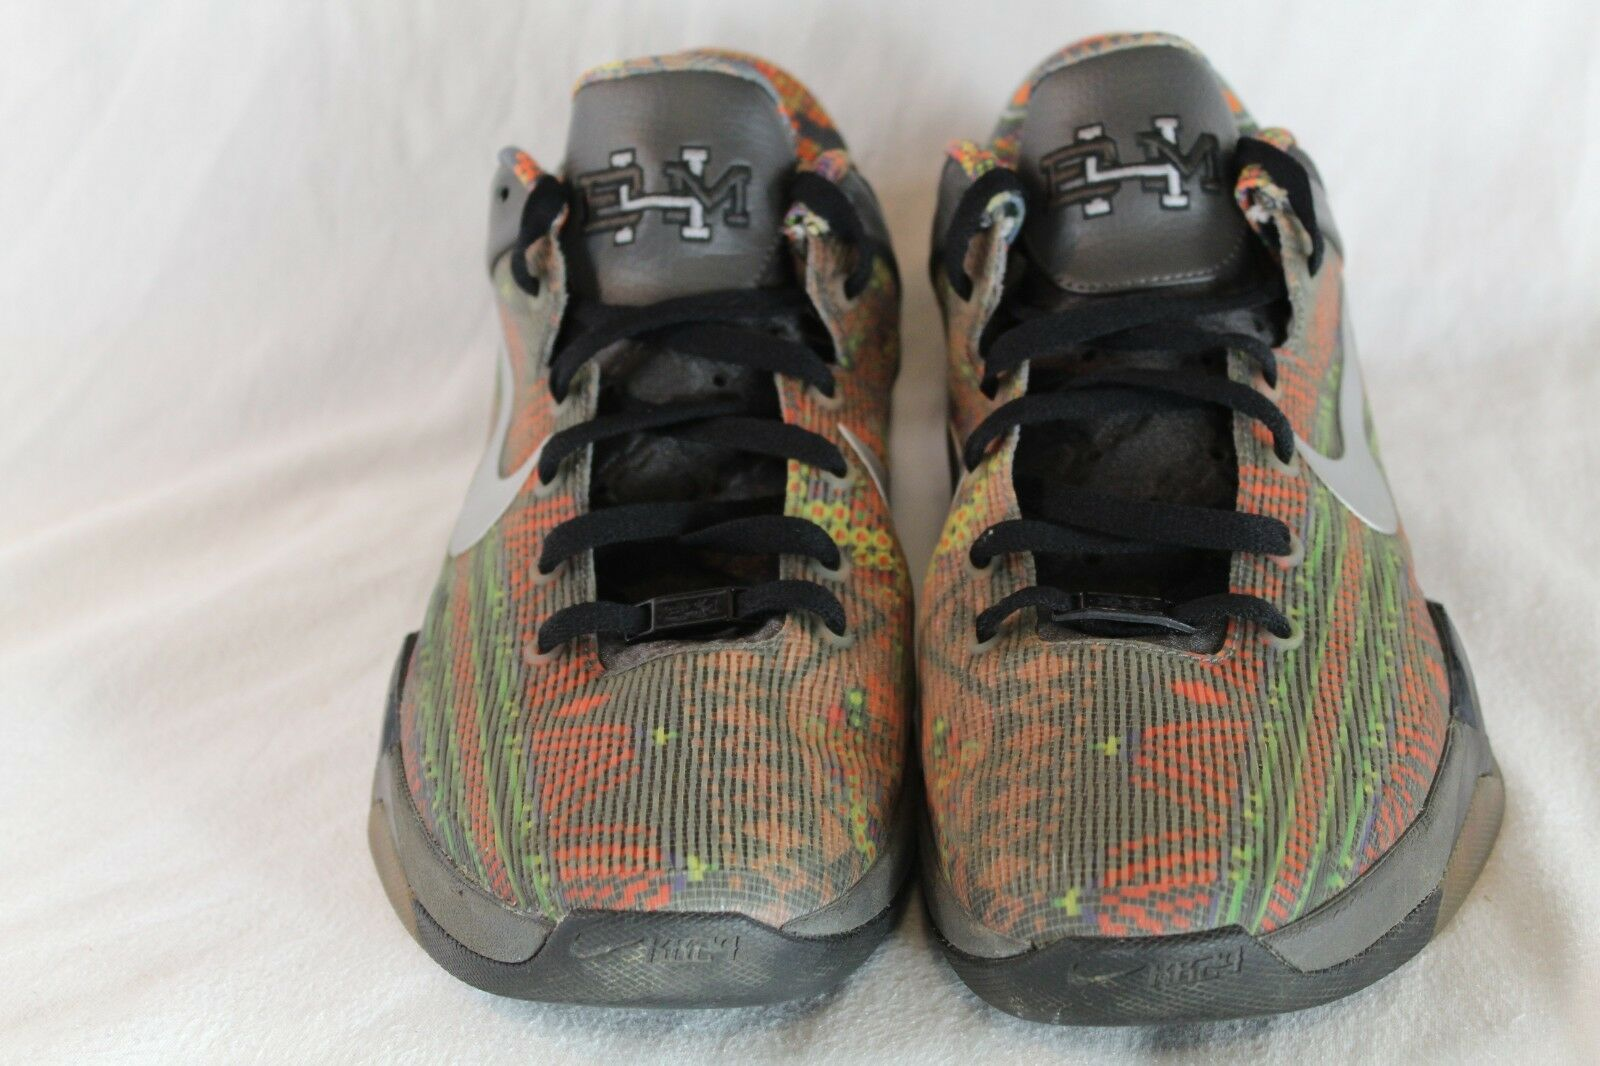 40f7d6614c Nike Kobe VII System BHM Size 11 530961-001 Pre-Owned 7 Zoom  ntalgh2617-Athletic Shoes. Nike Air Max 270 Mens ...